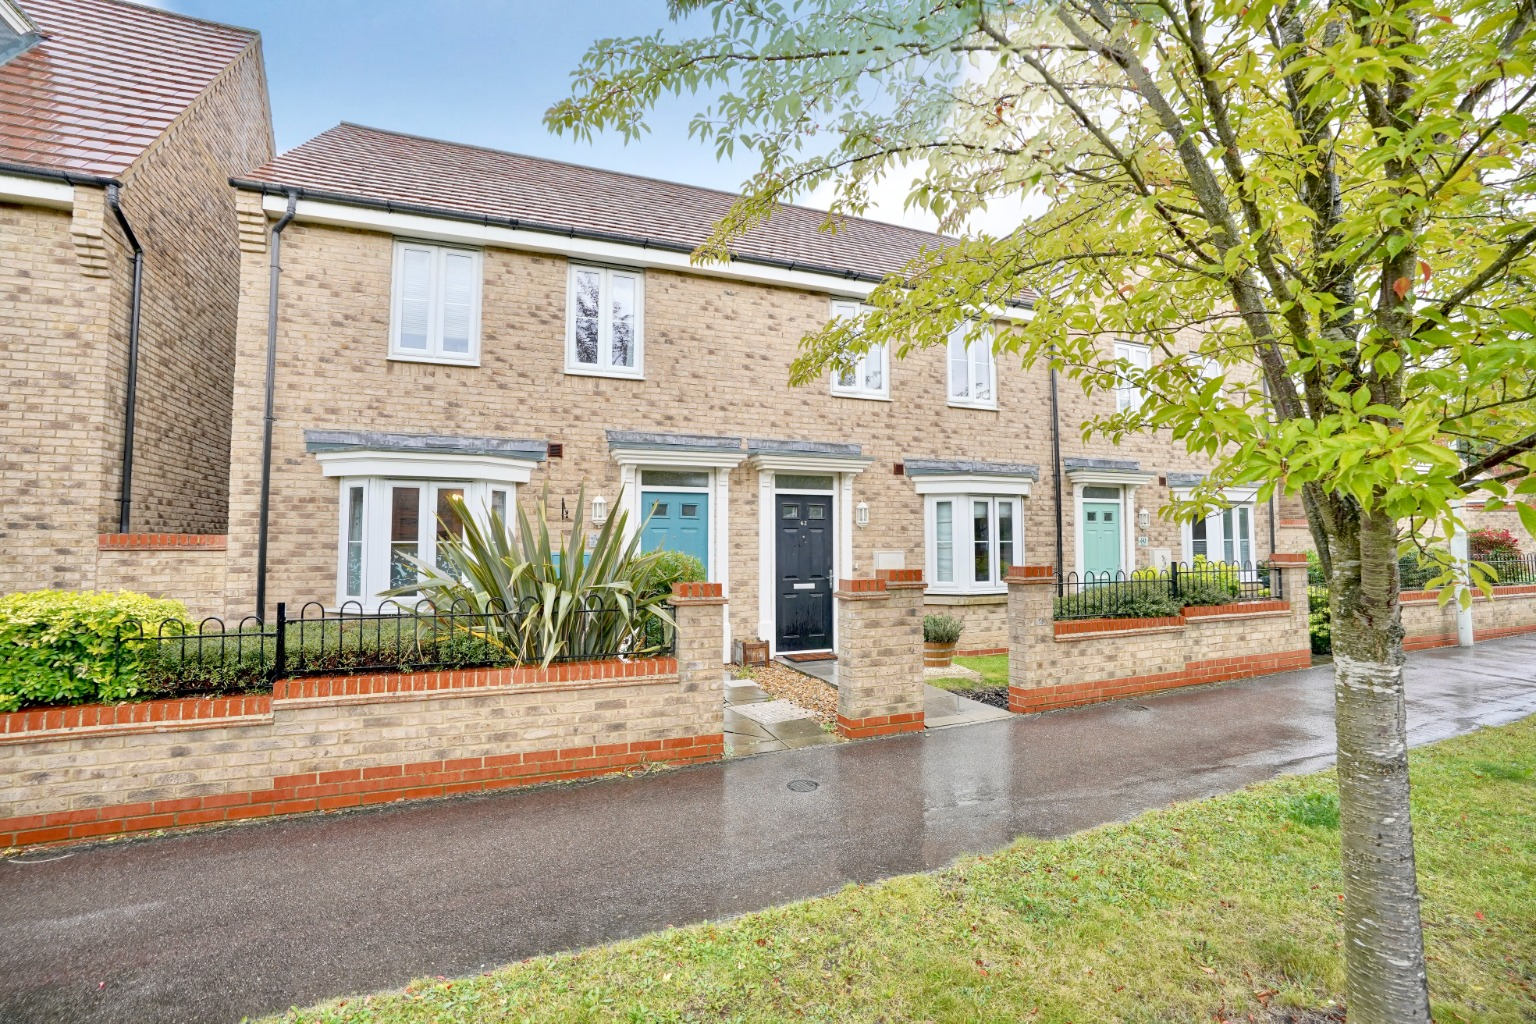 3 bed end of terrace house for sale in Stone Hill, Cambridgeshire  - Property Image 1